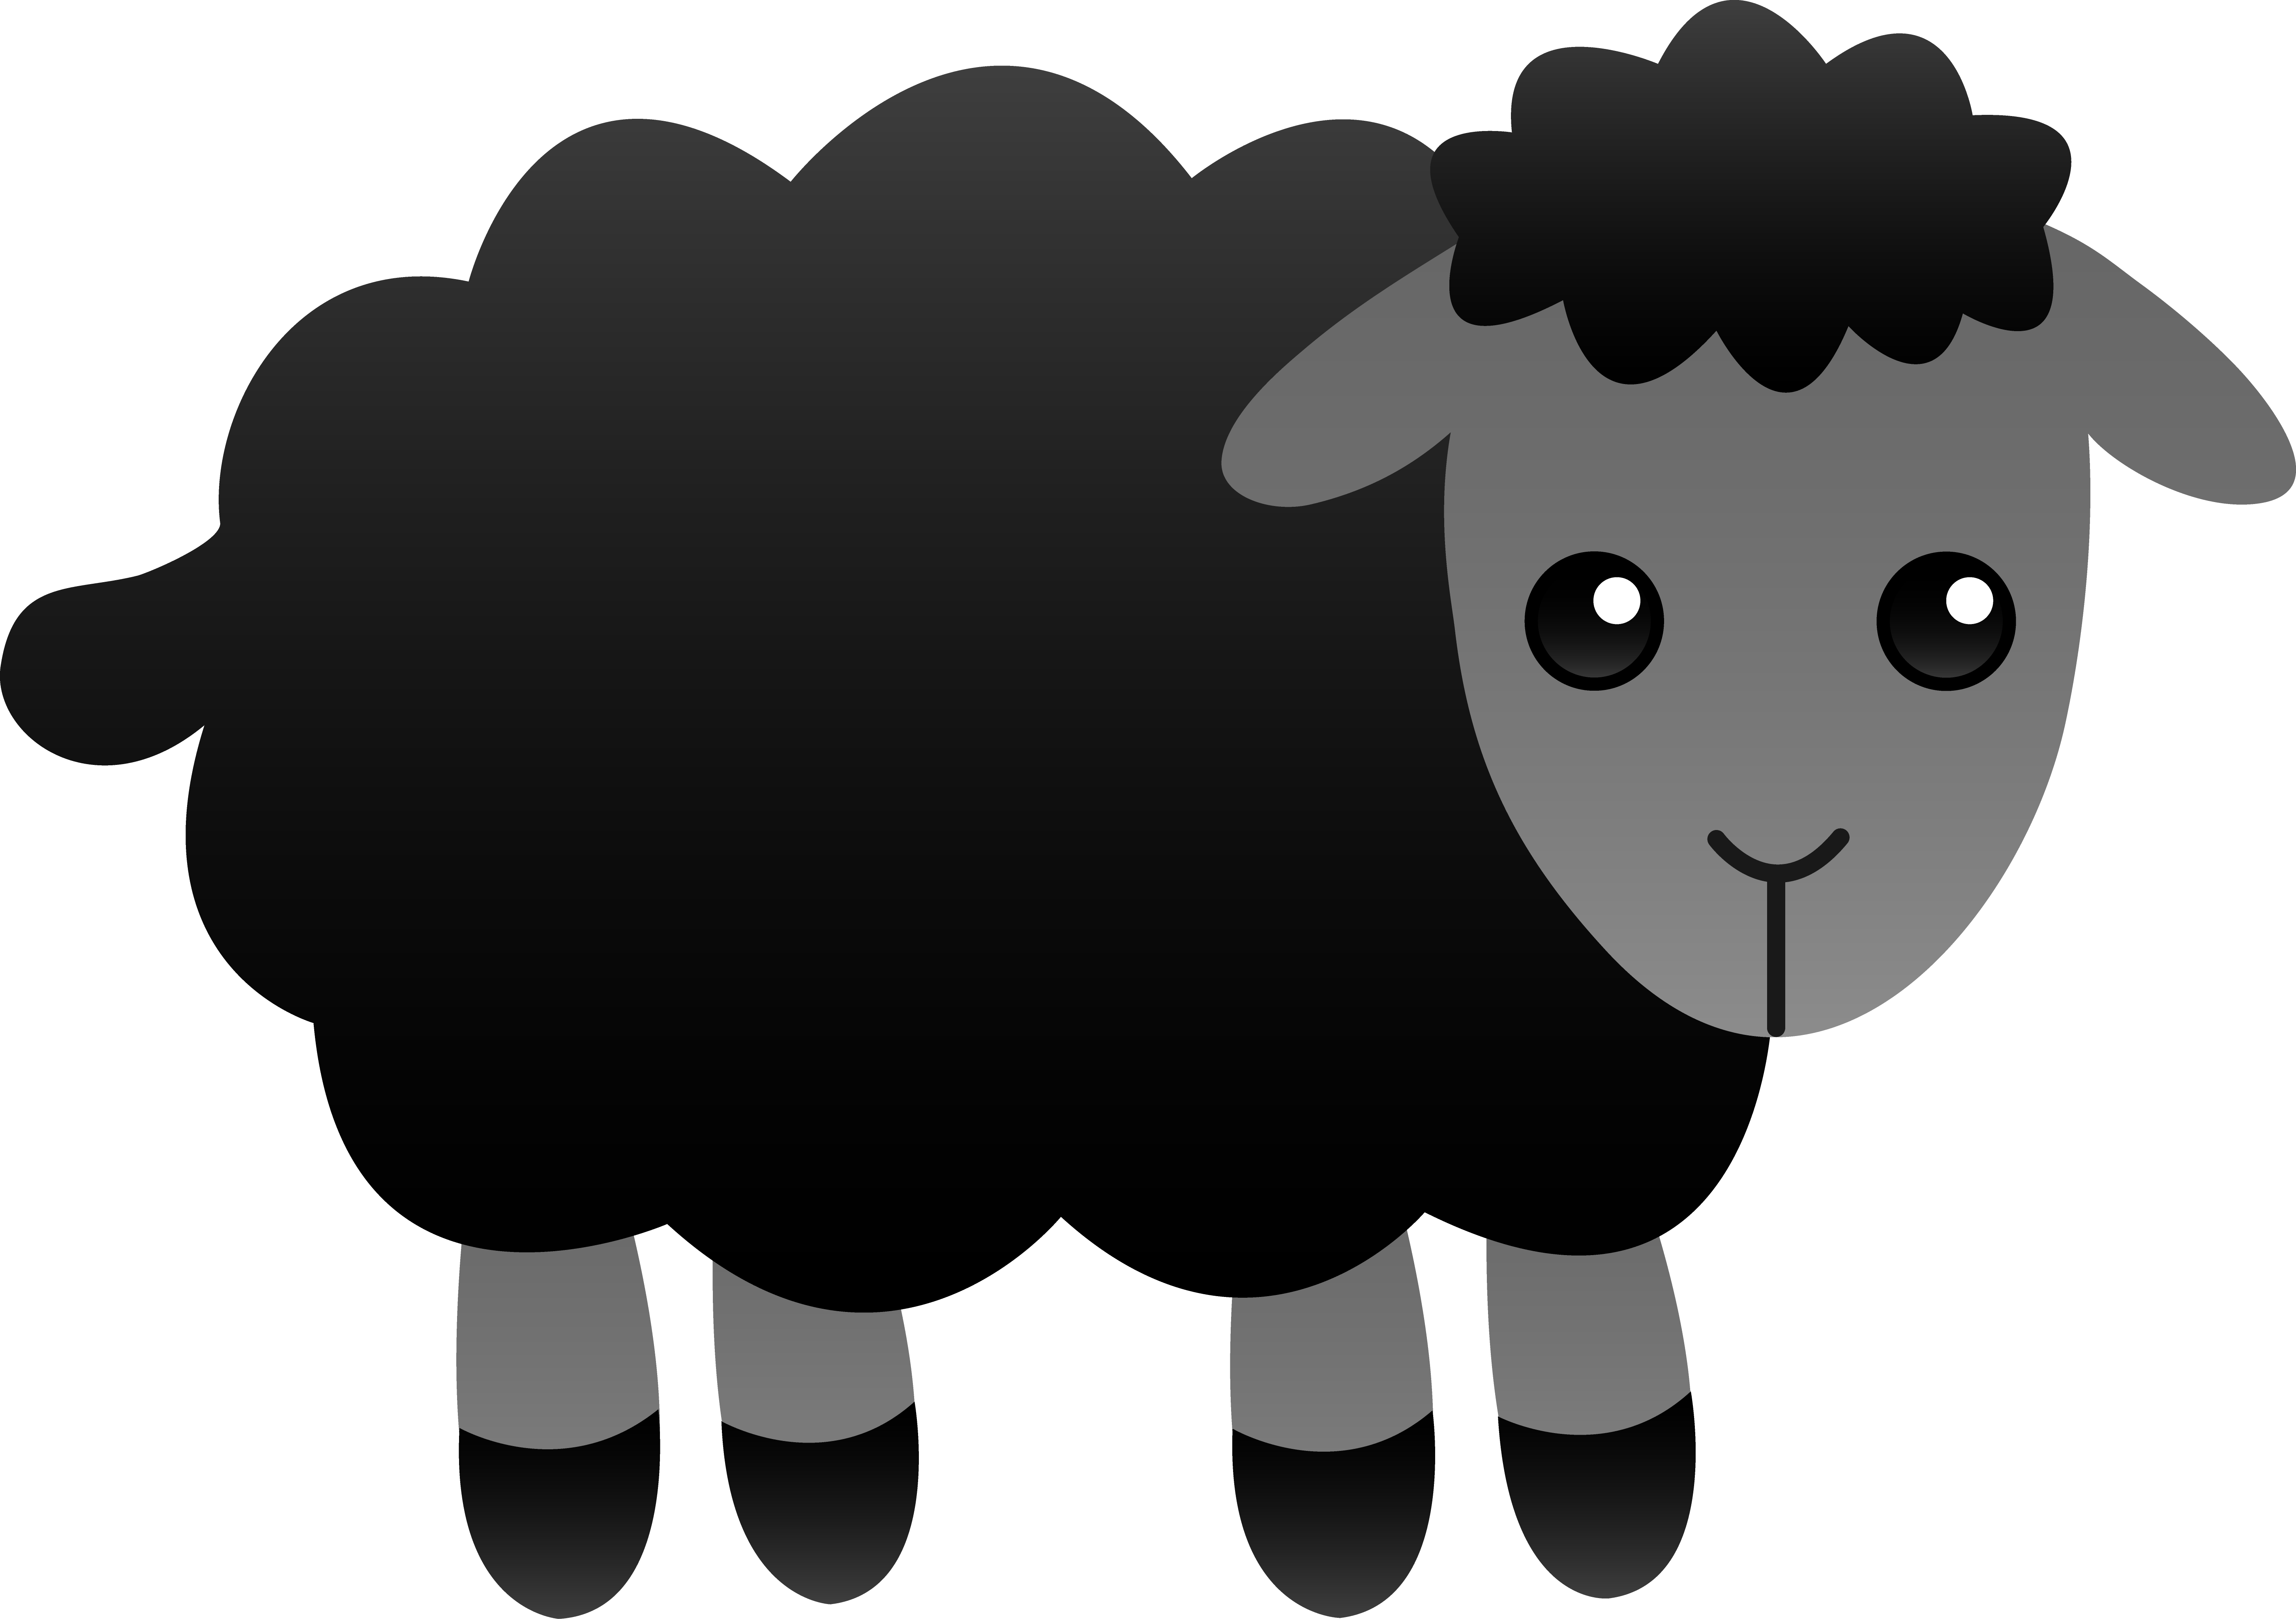 Drawing dice cute. Fluffy black sheep free